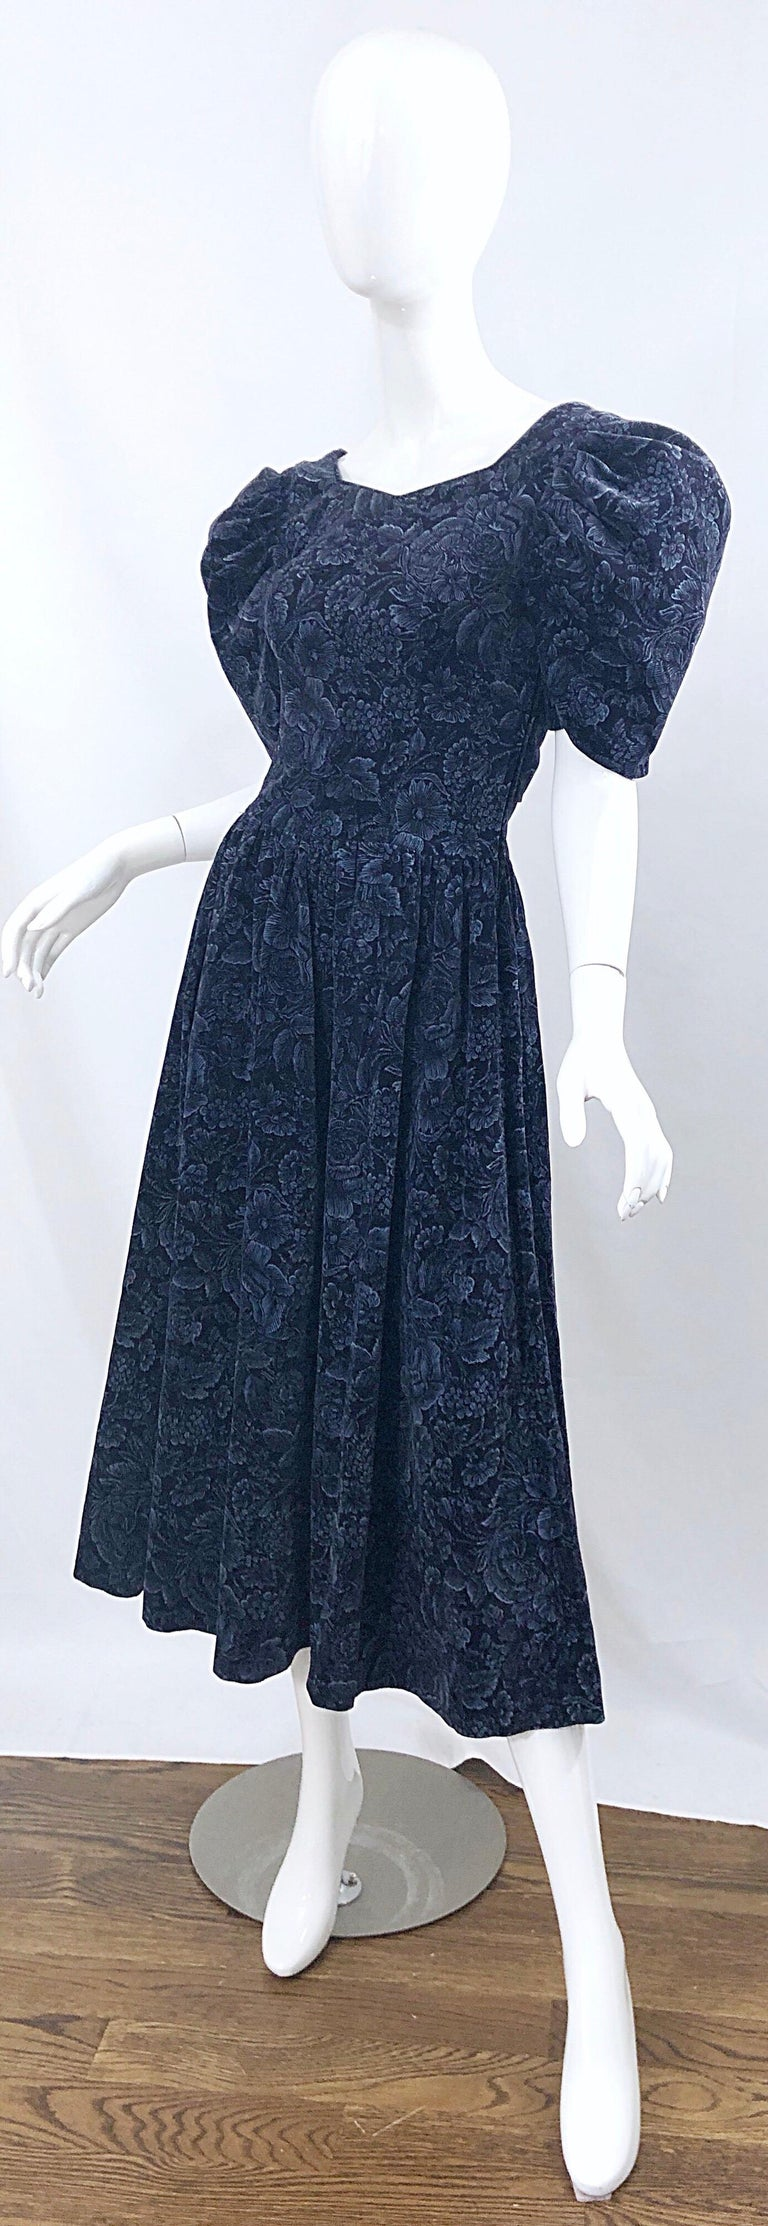 1980s Laura Ashley Batsheva Navy Blue Velvet Open Back Vintage 80s Midi Dress  For Sale 2